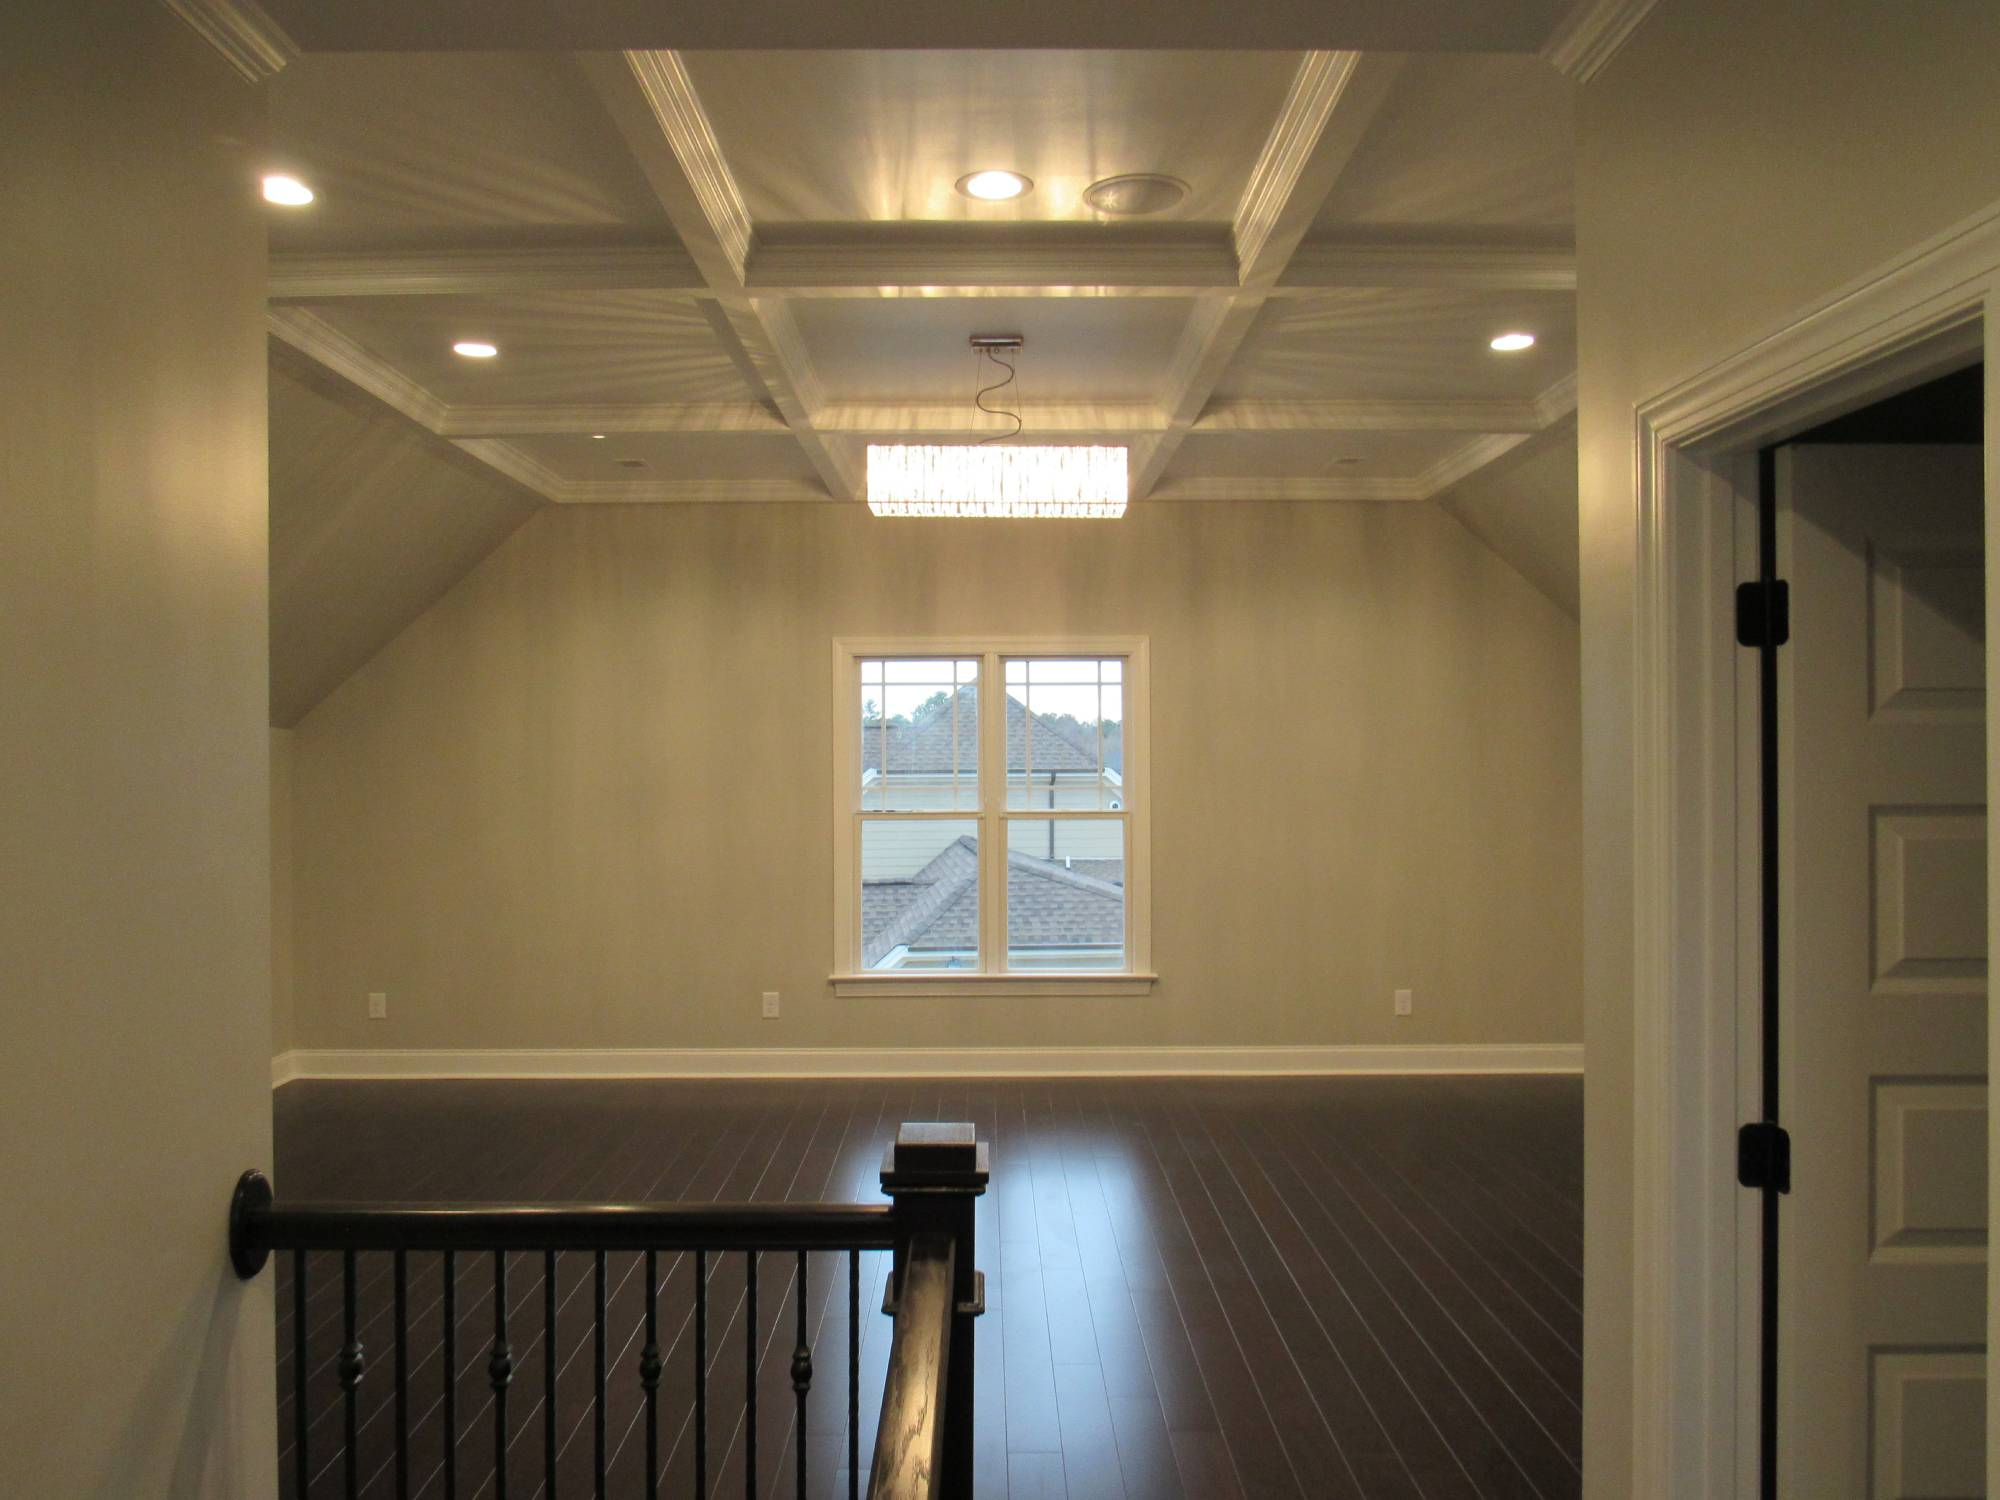 Custom Homes Construction Options and Features /static/media/3.44d70b43.jpg